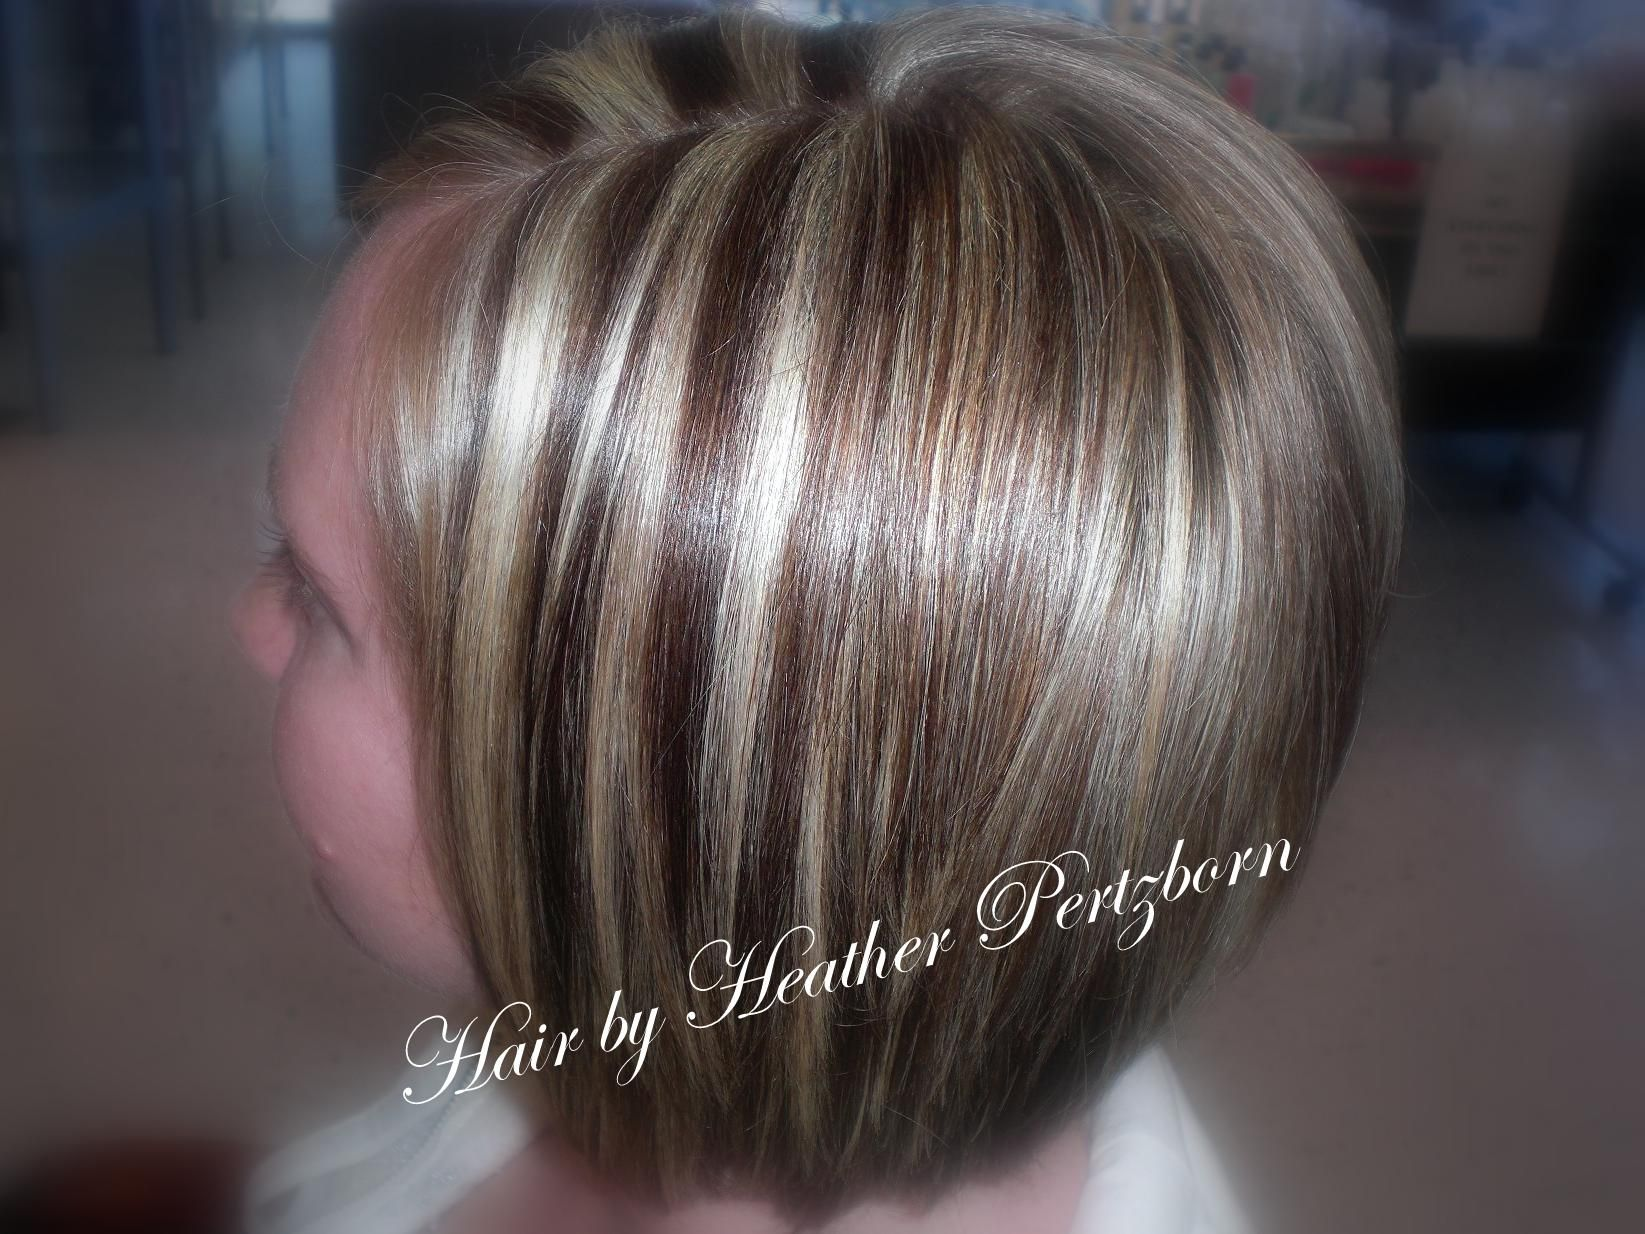 Hair Highlights Styles: Cute Bob Cut Chunky Highlights Lowlights Blonde Red Brown